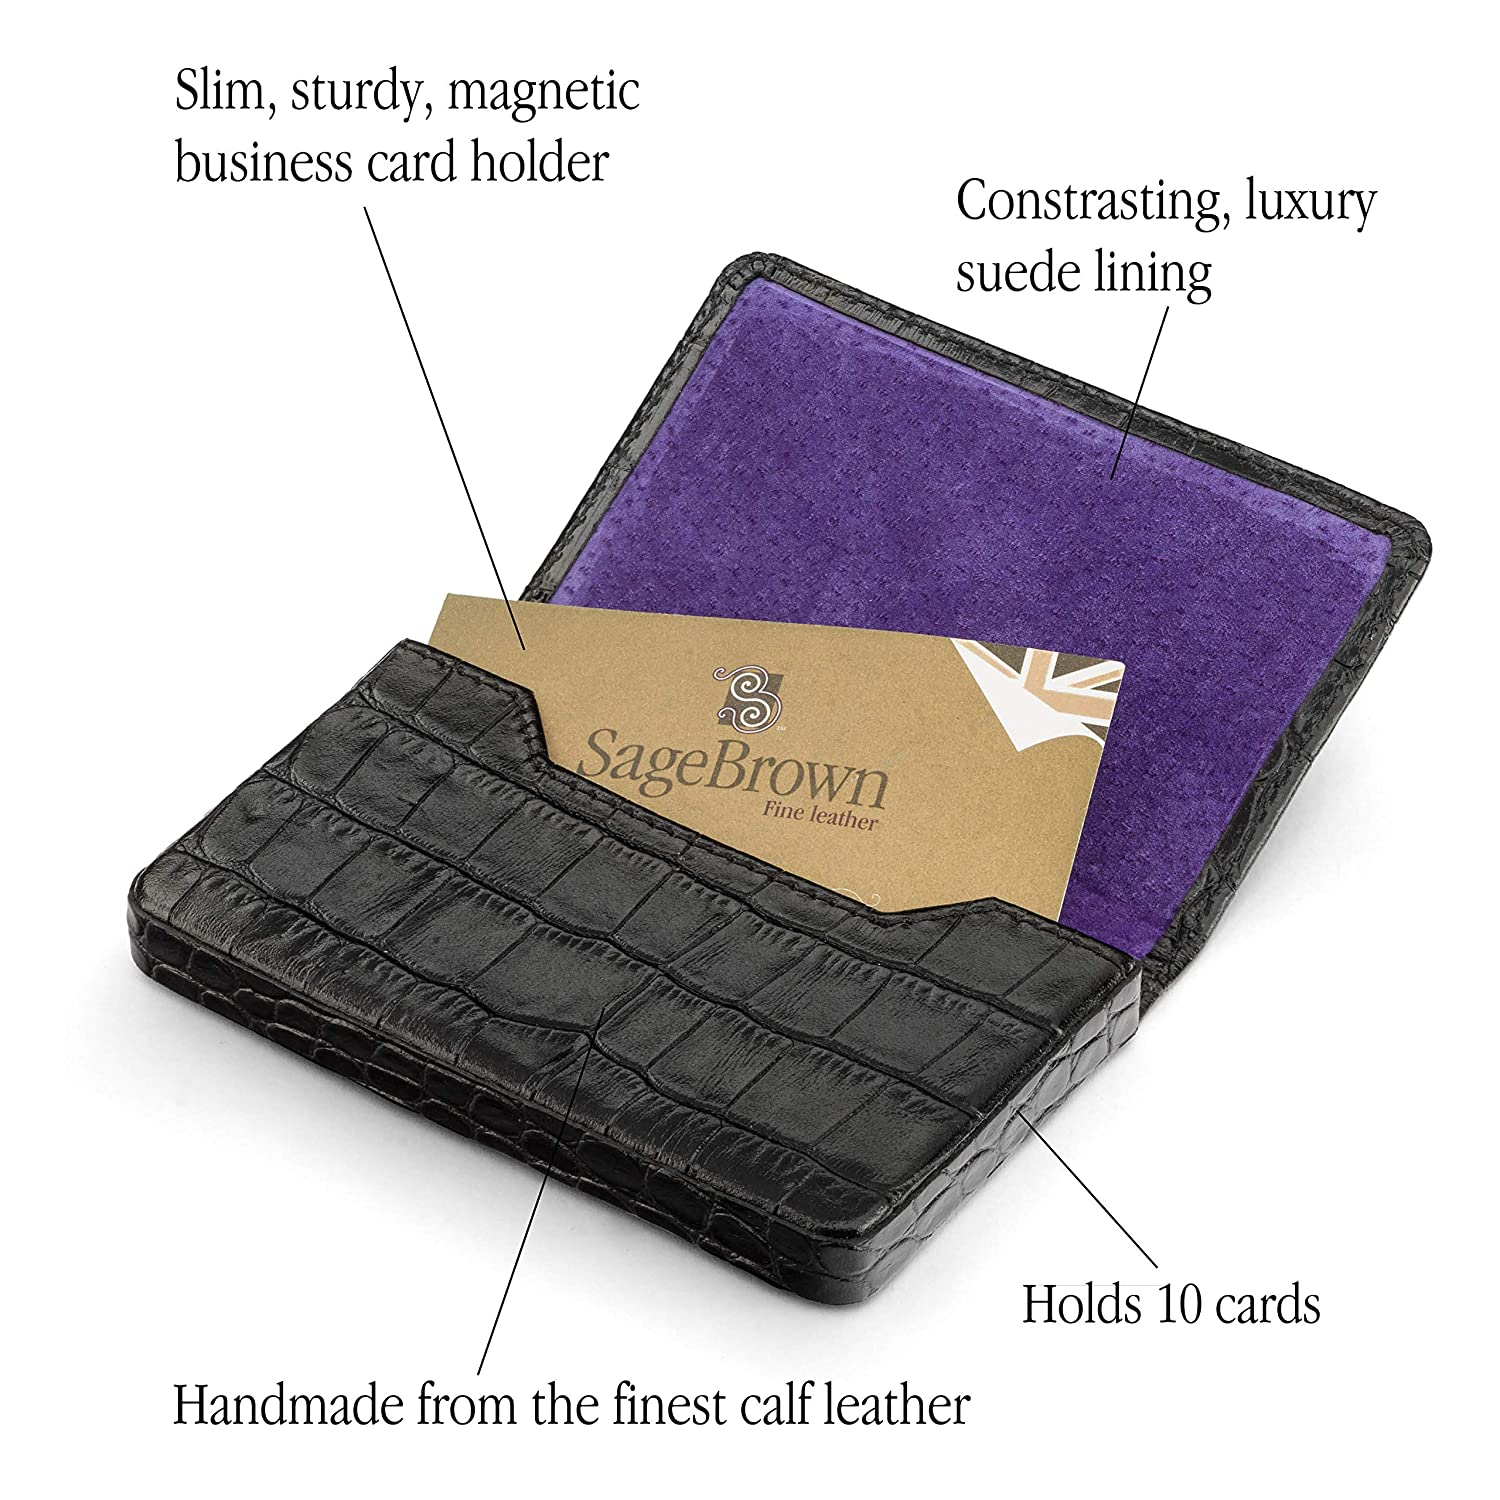 new listing SageBrown Leather Magnetic Business Card Holder ...